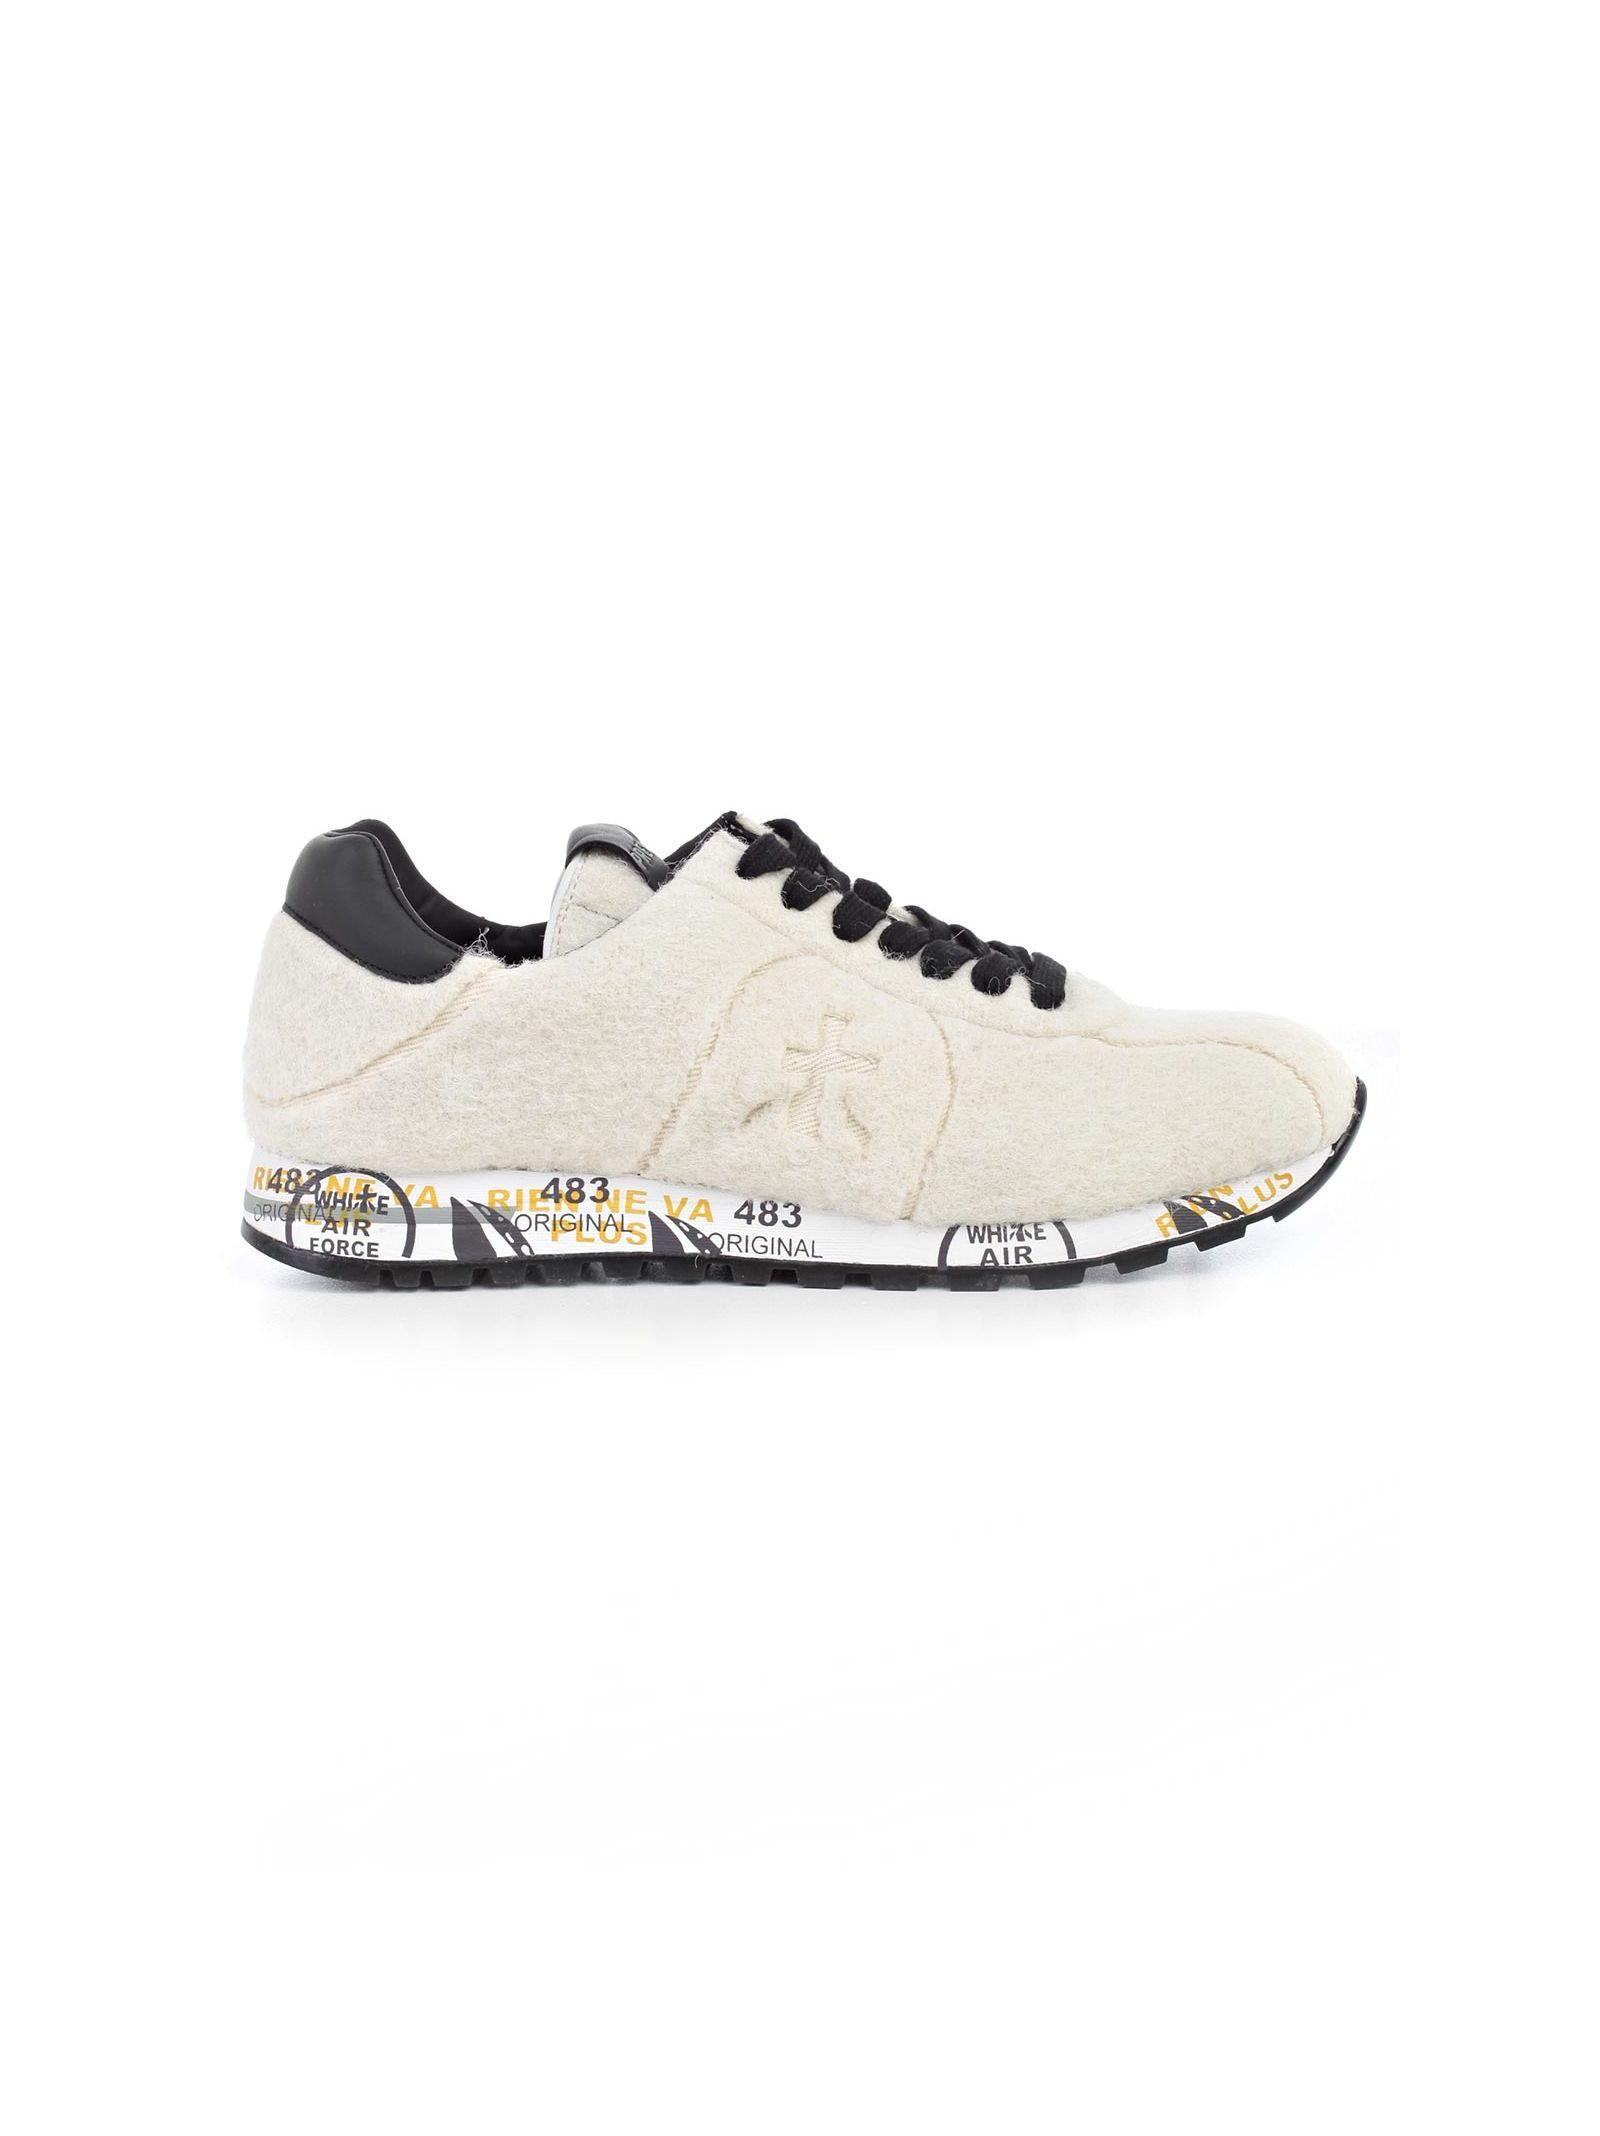 White Premiata Shoes - White Premiata - Bread 3